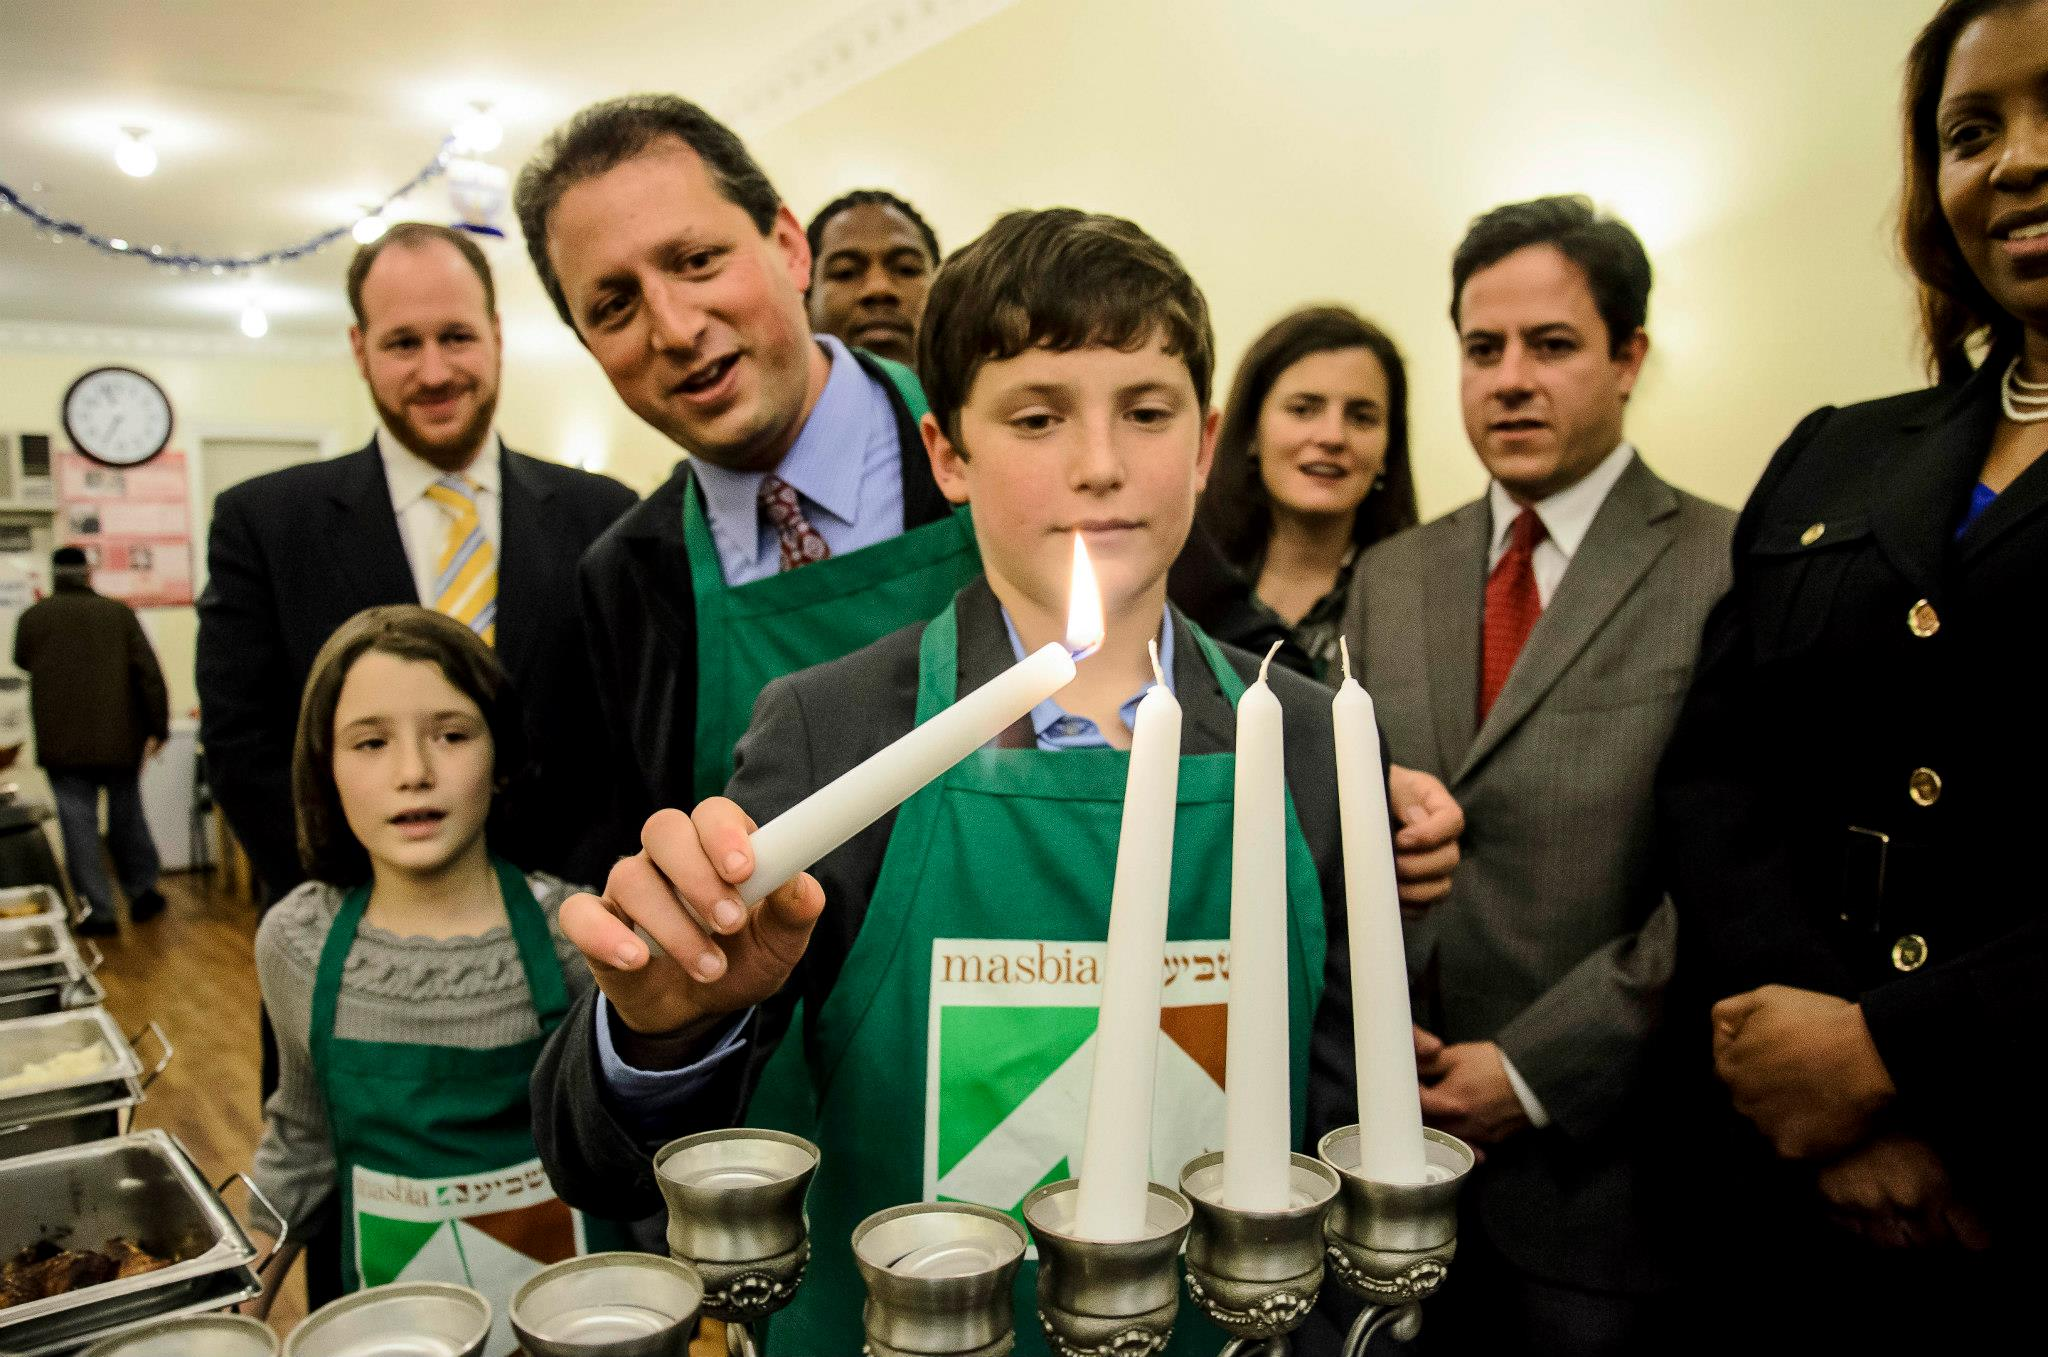 Masbia_Hanukkah_Candle_Lighting.jpg